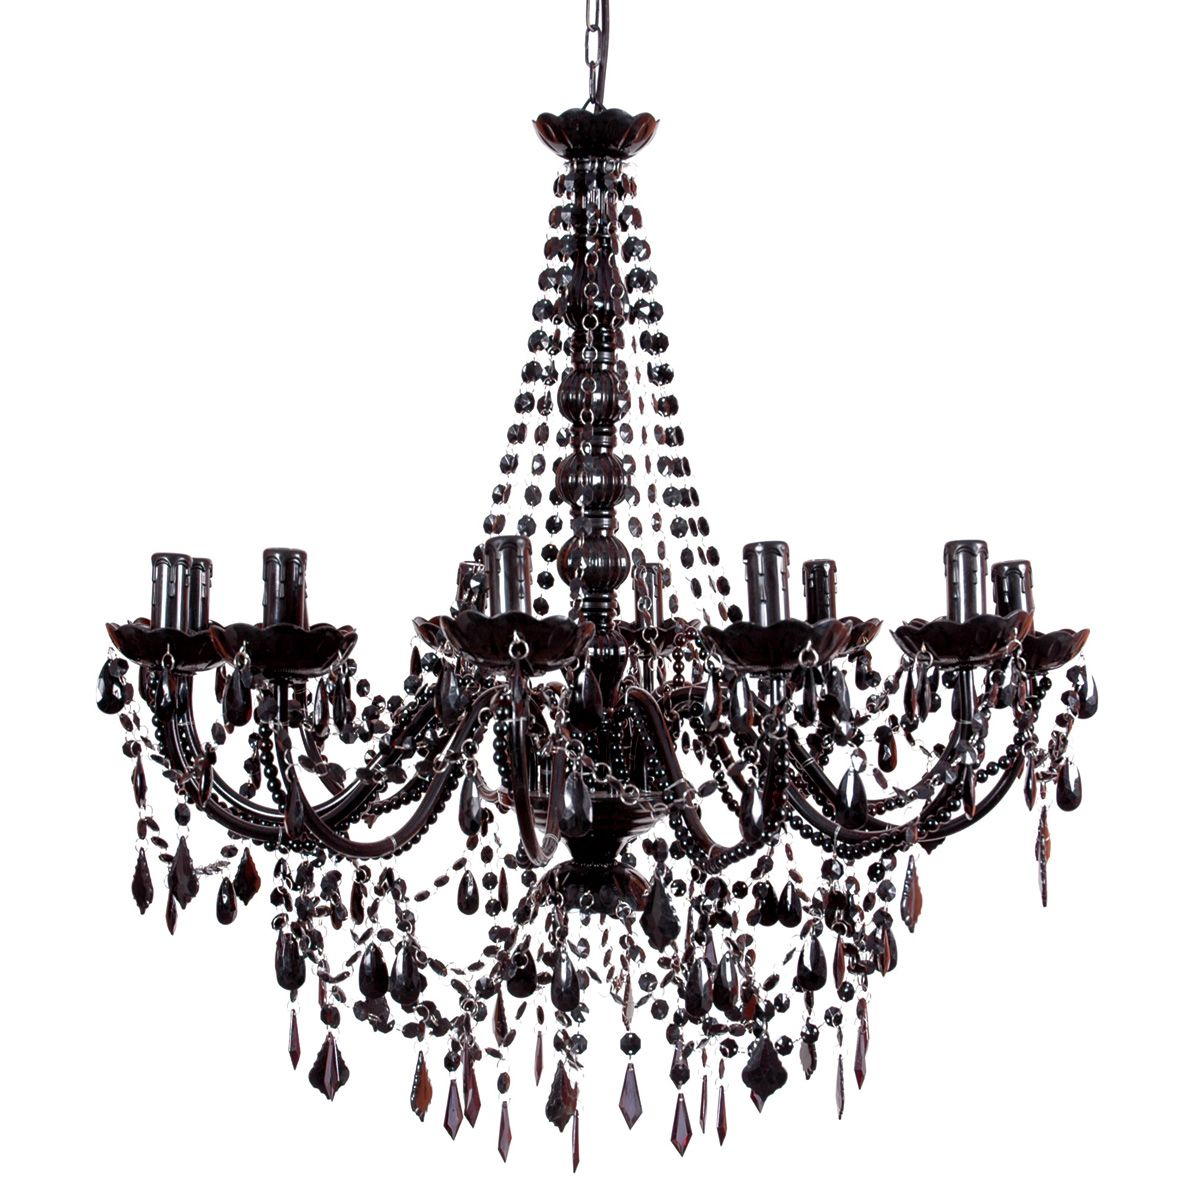 Chandiliers simply chandeliers black bronze brass white pink all chandiliers simply chandeliers black bronze brass white pink all chandeliers or be aloadofball Images